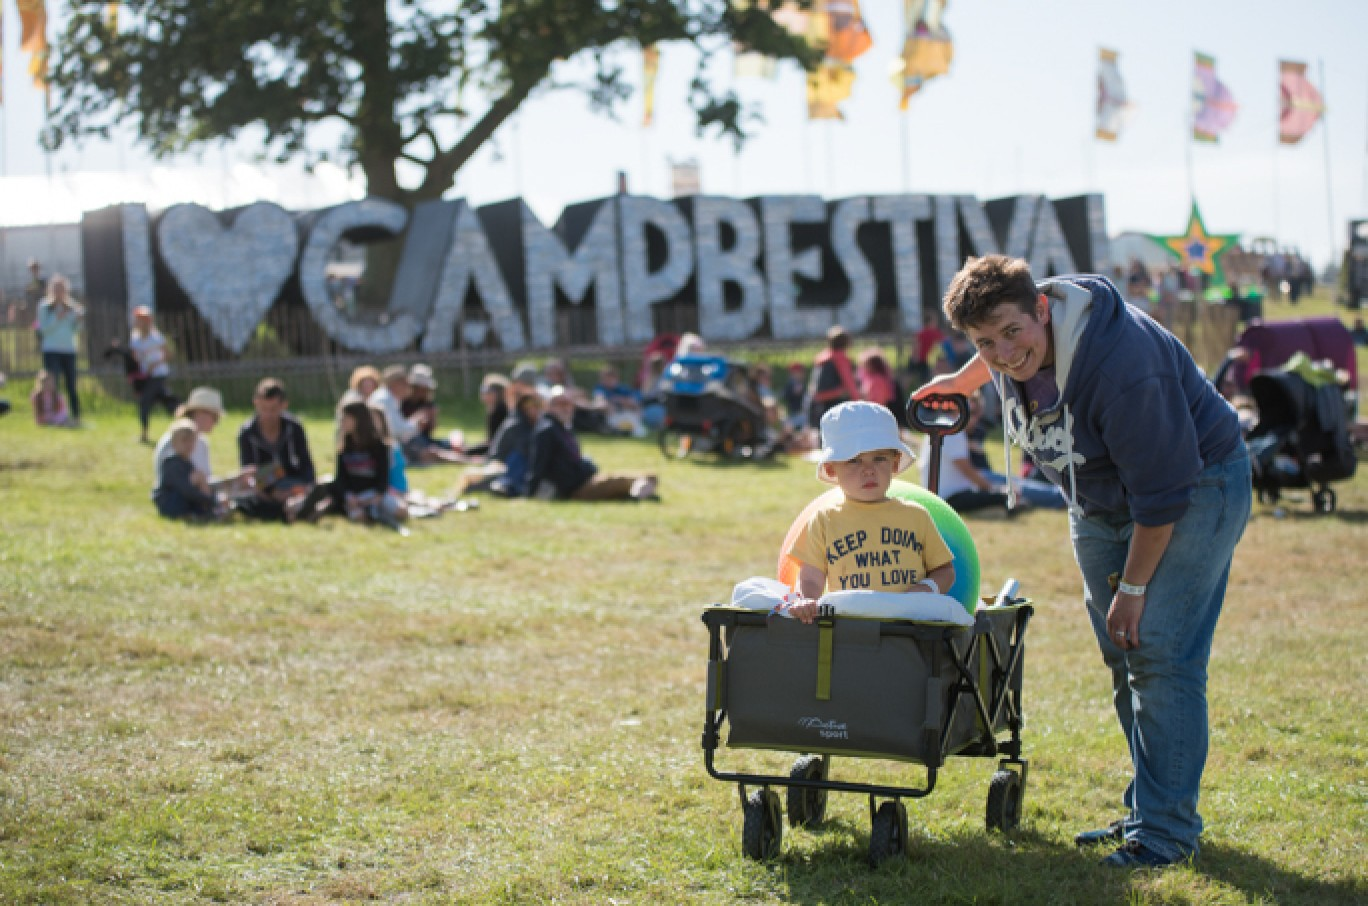 6_136-camp-bestival-thursday-0741501585112